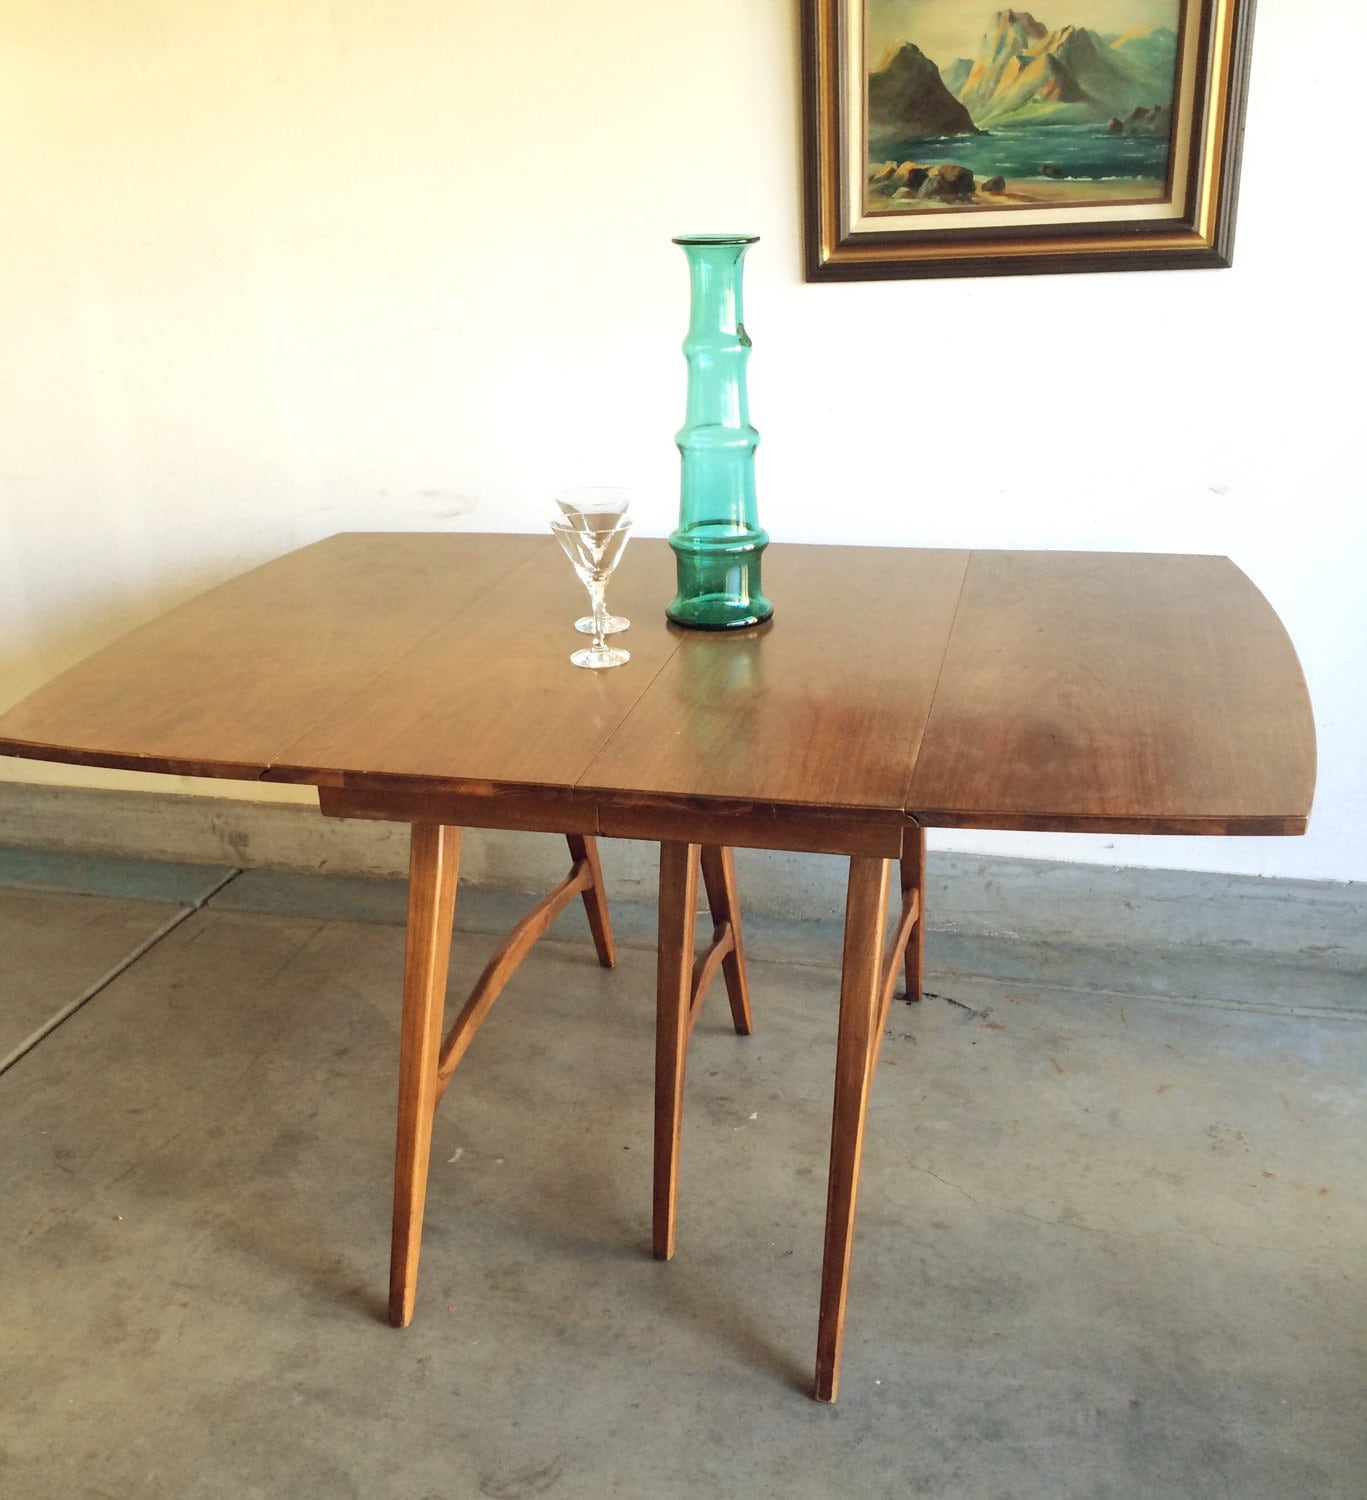 MCM Dining Table By Craddock By Seasonofchange On Etsy